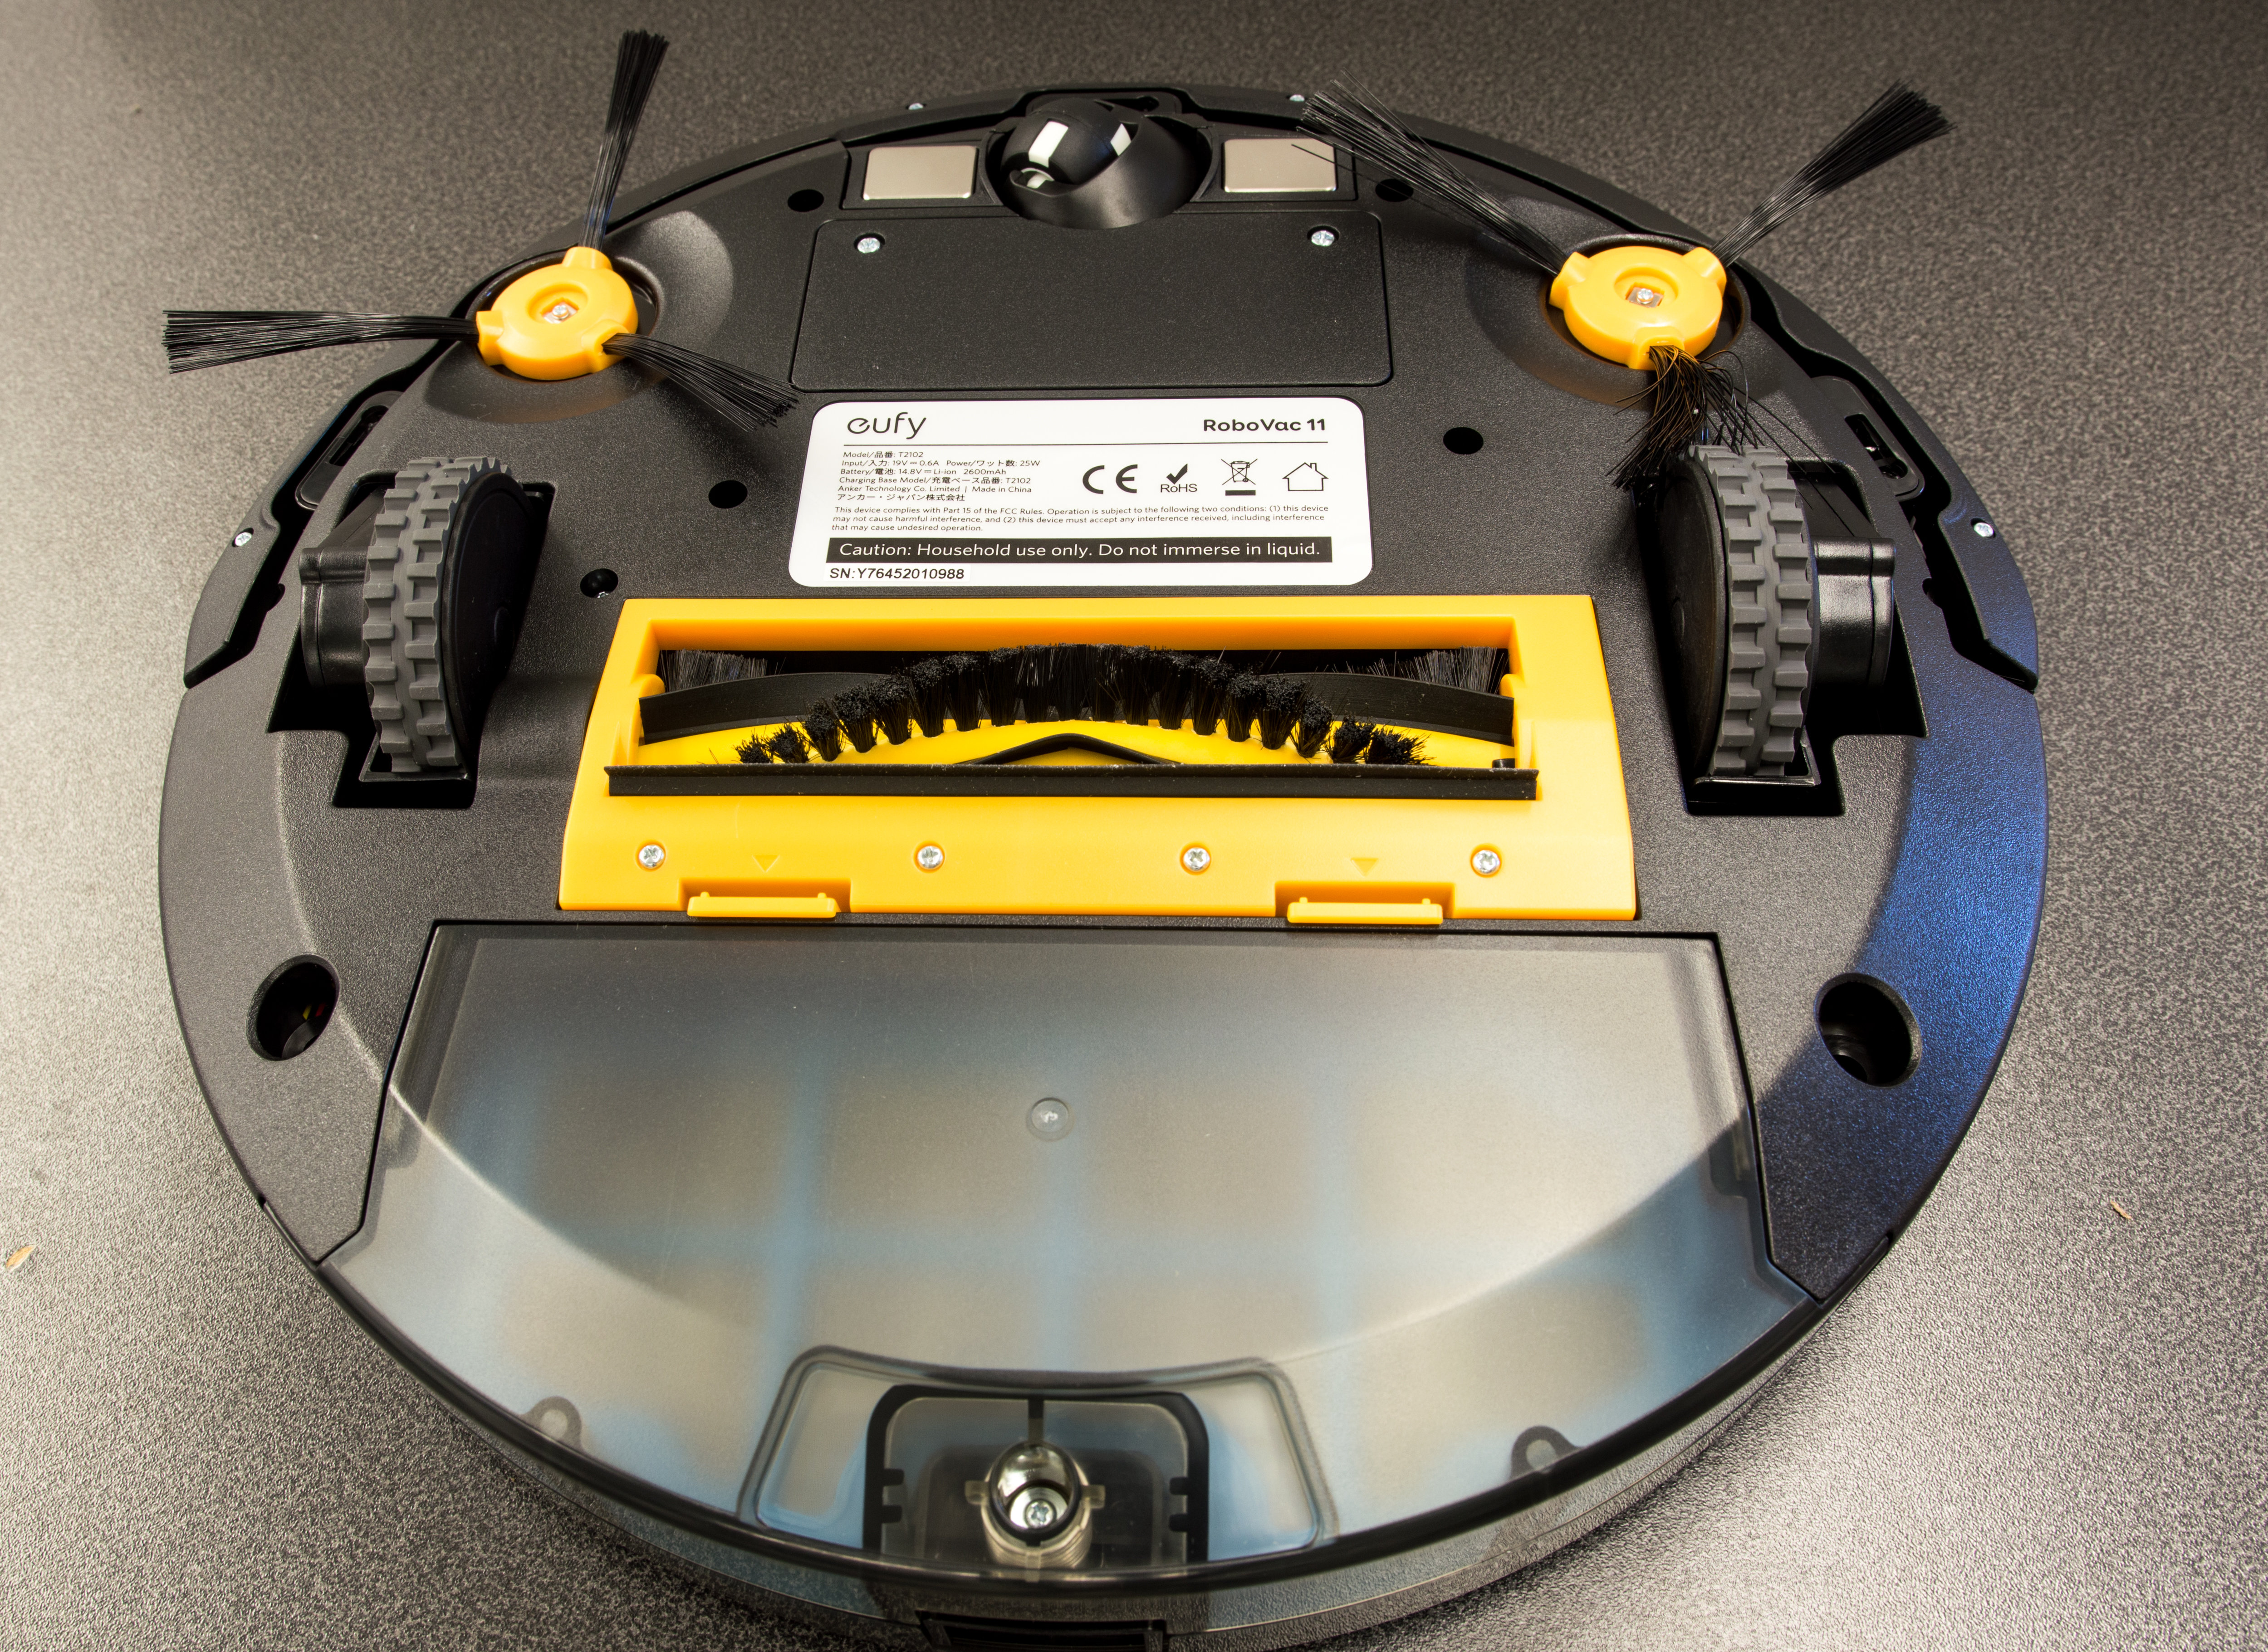 The RoboVac 11 uses a three-point system to get at dirt.